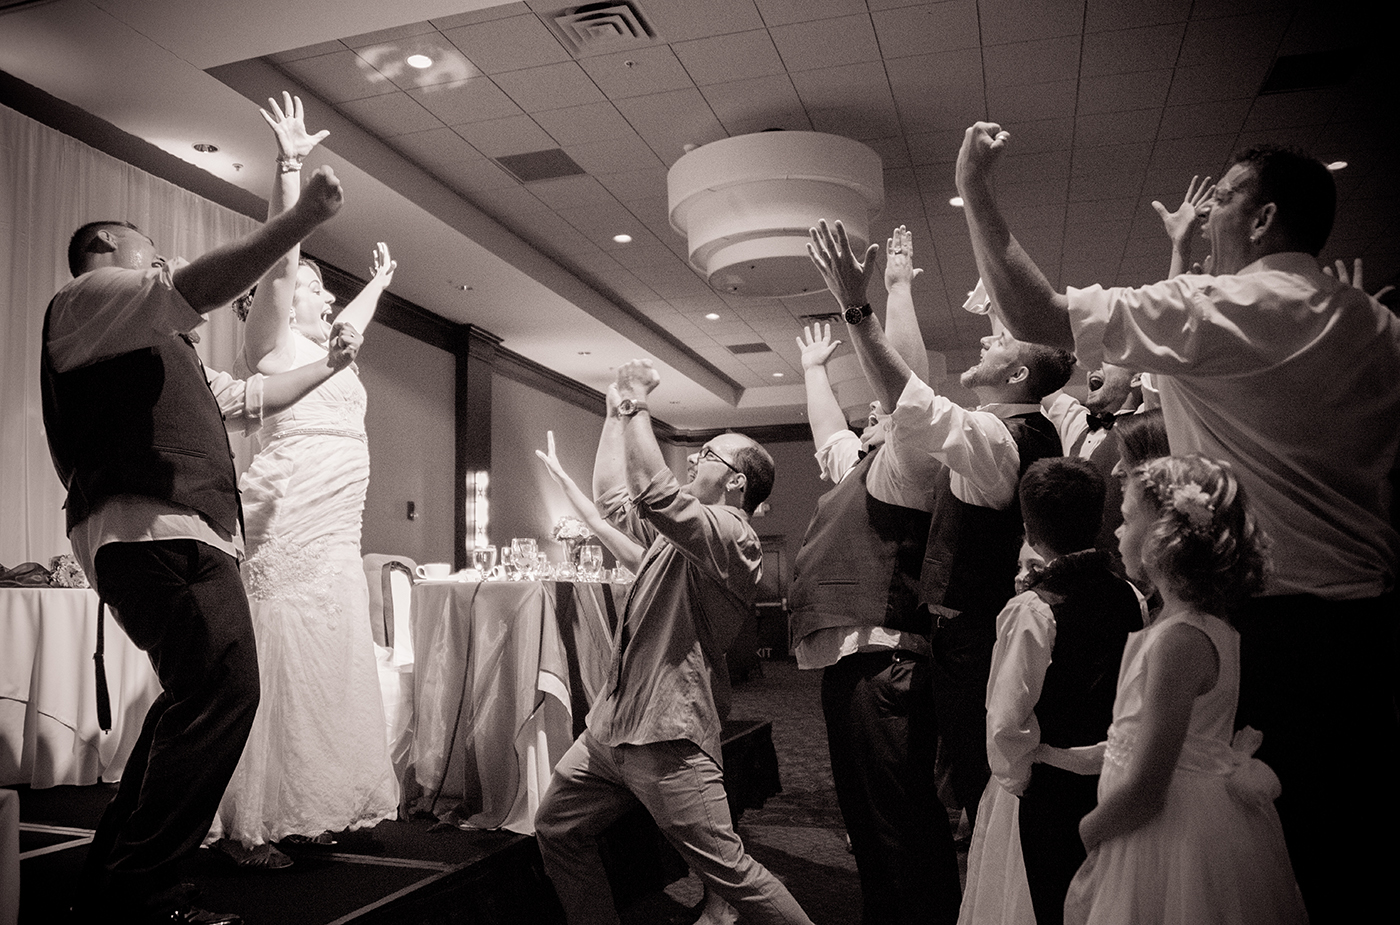 All Occasions Photography Albany NY - Wedding Photography Bride & Groom Having Fun With Bridal Party